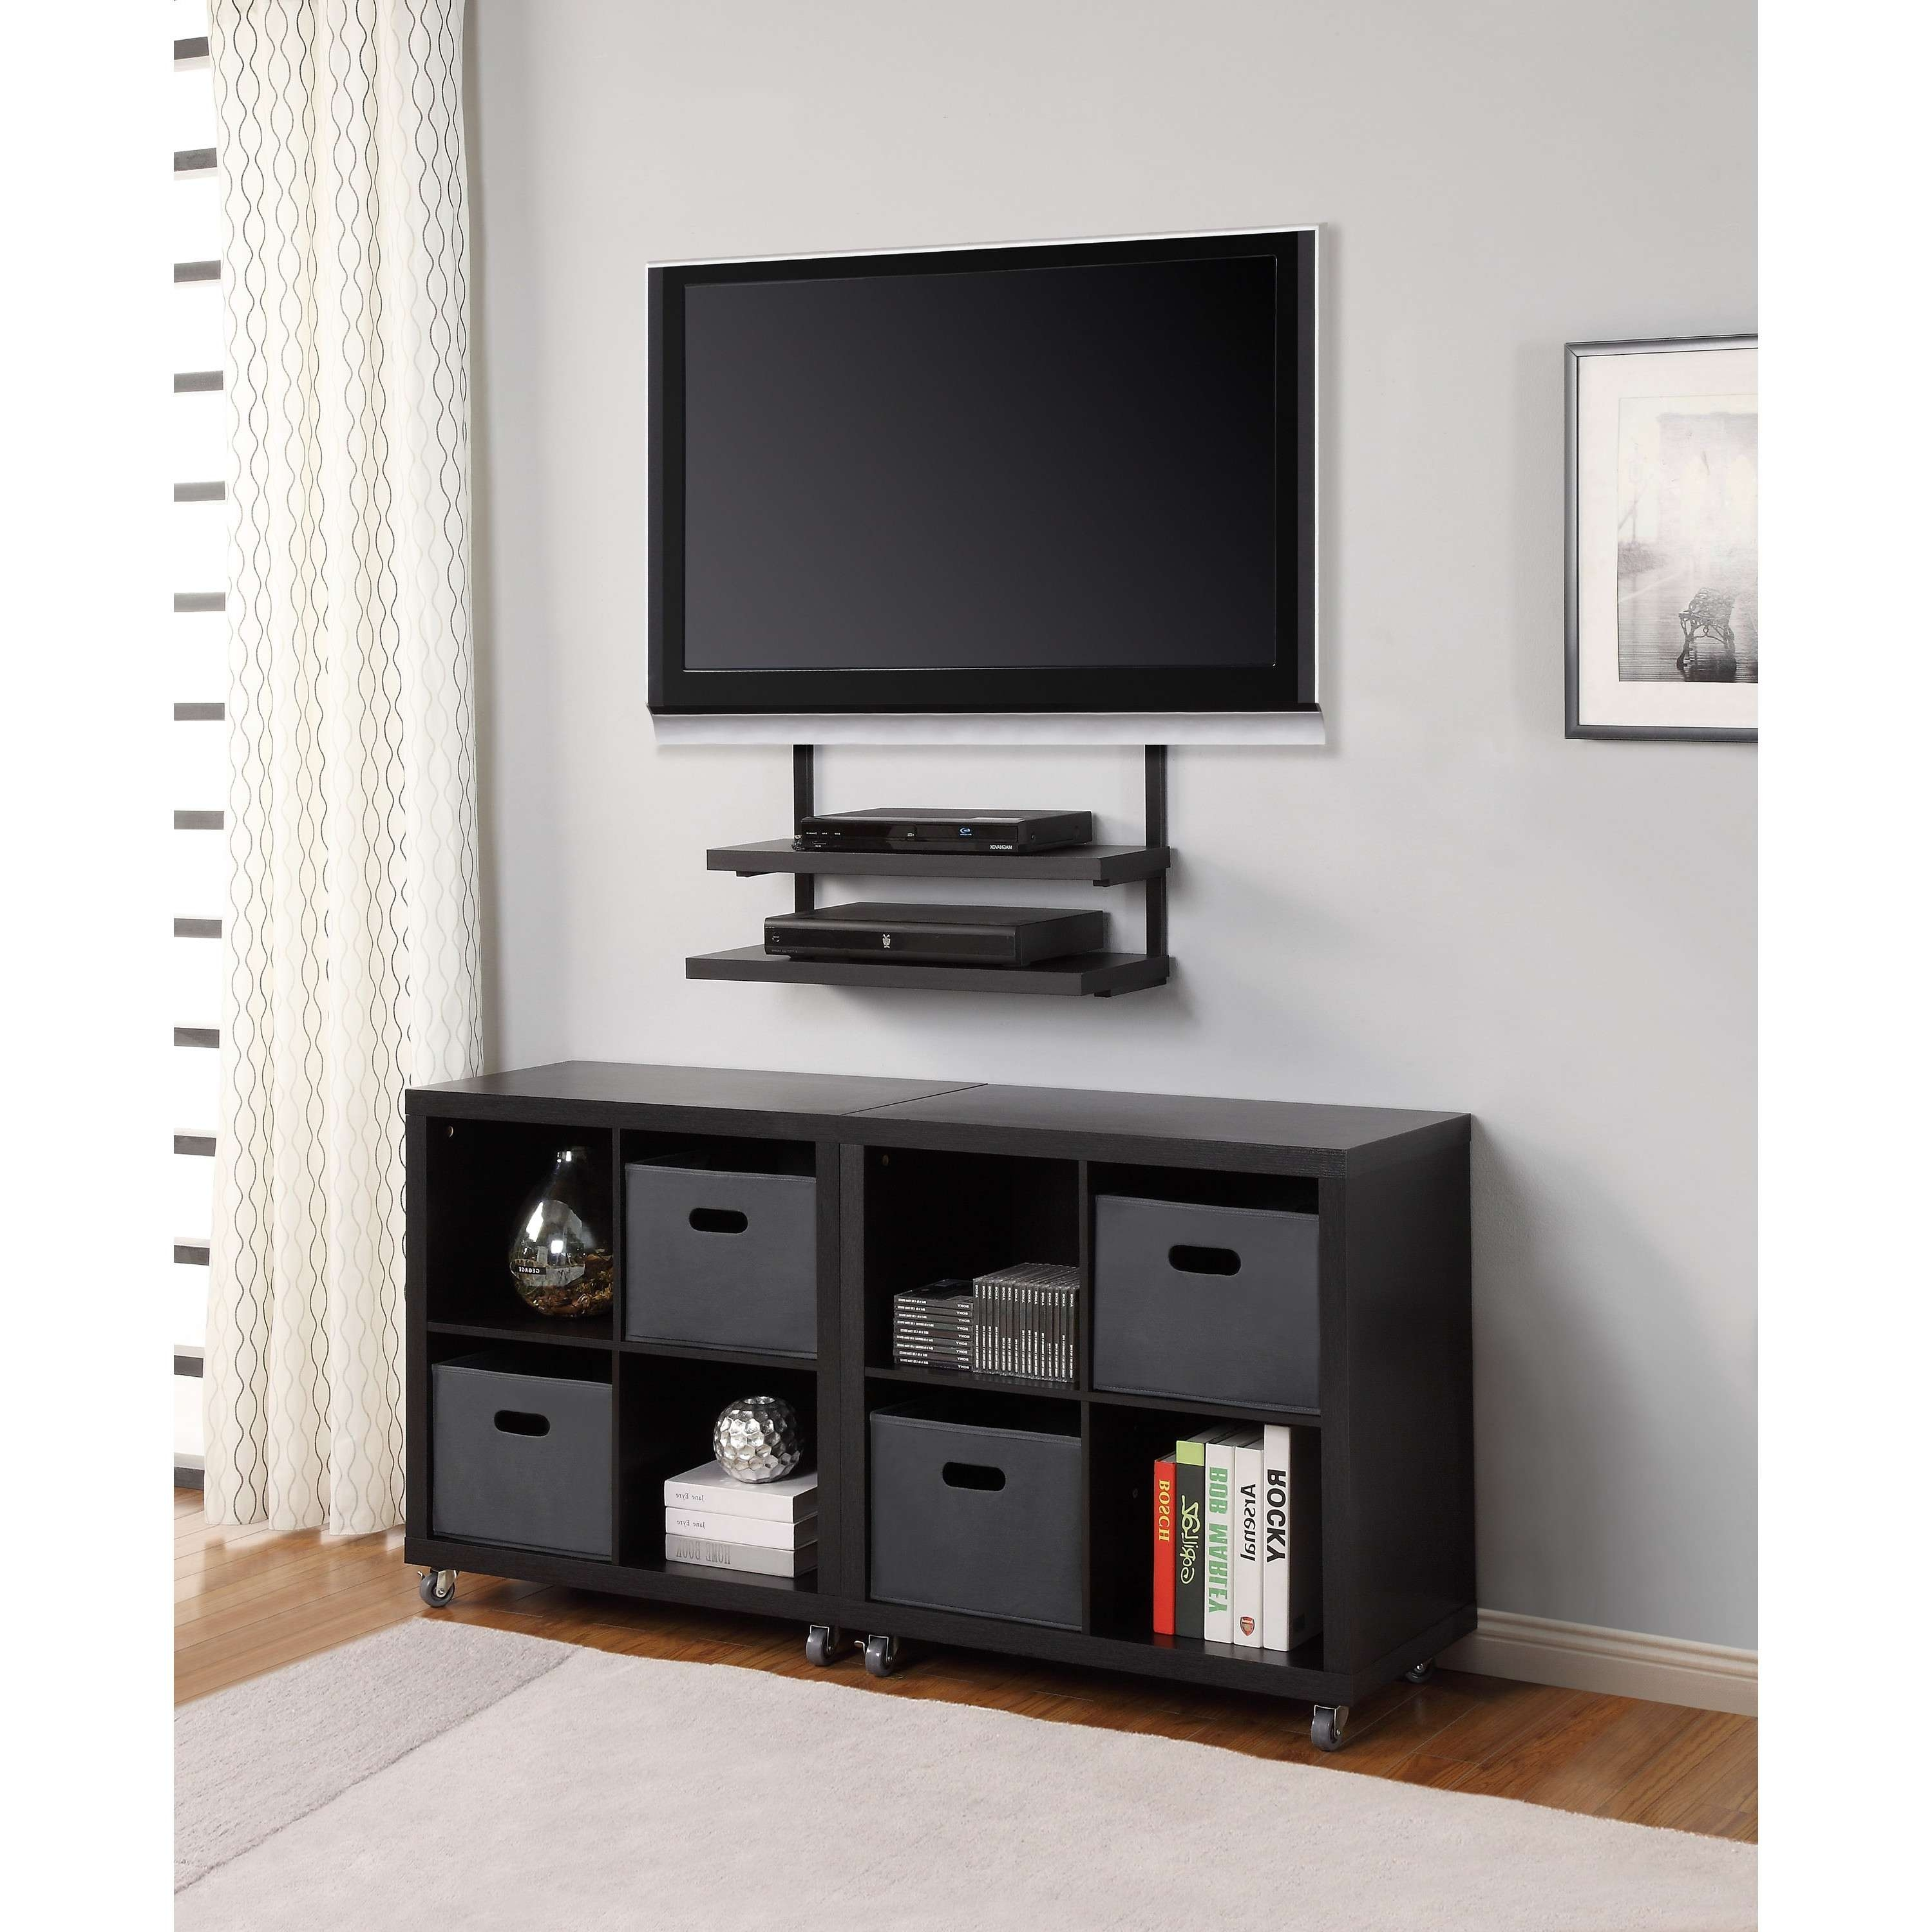 Tv Wall Mount Cabinet – Surripui For Wall Mounted Tv Cabinets For Flat Screens (View 14 of 20)